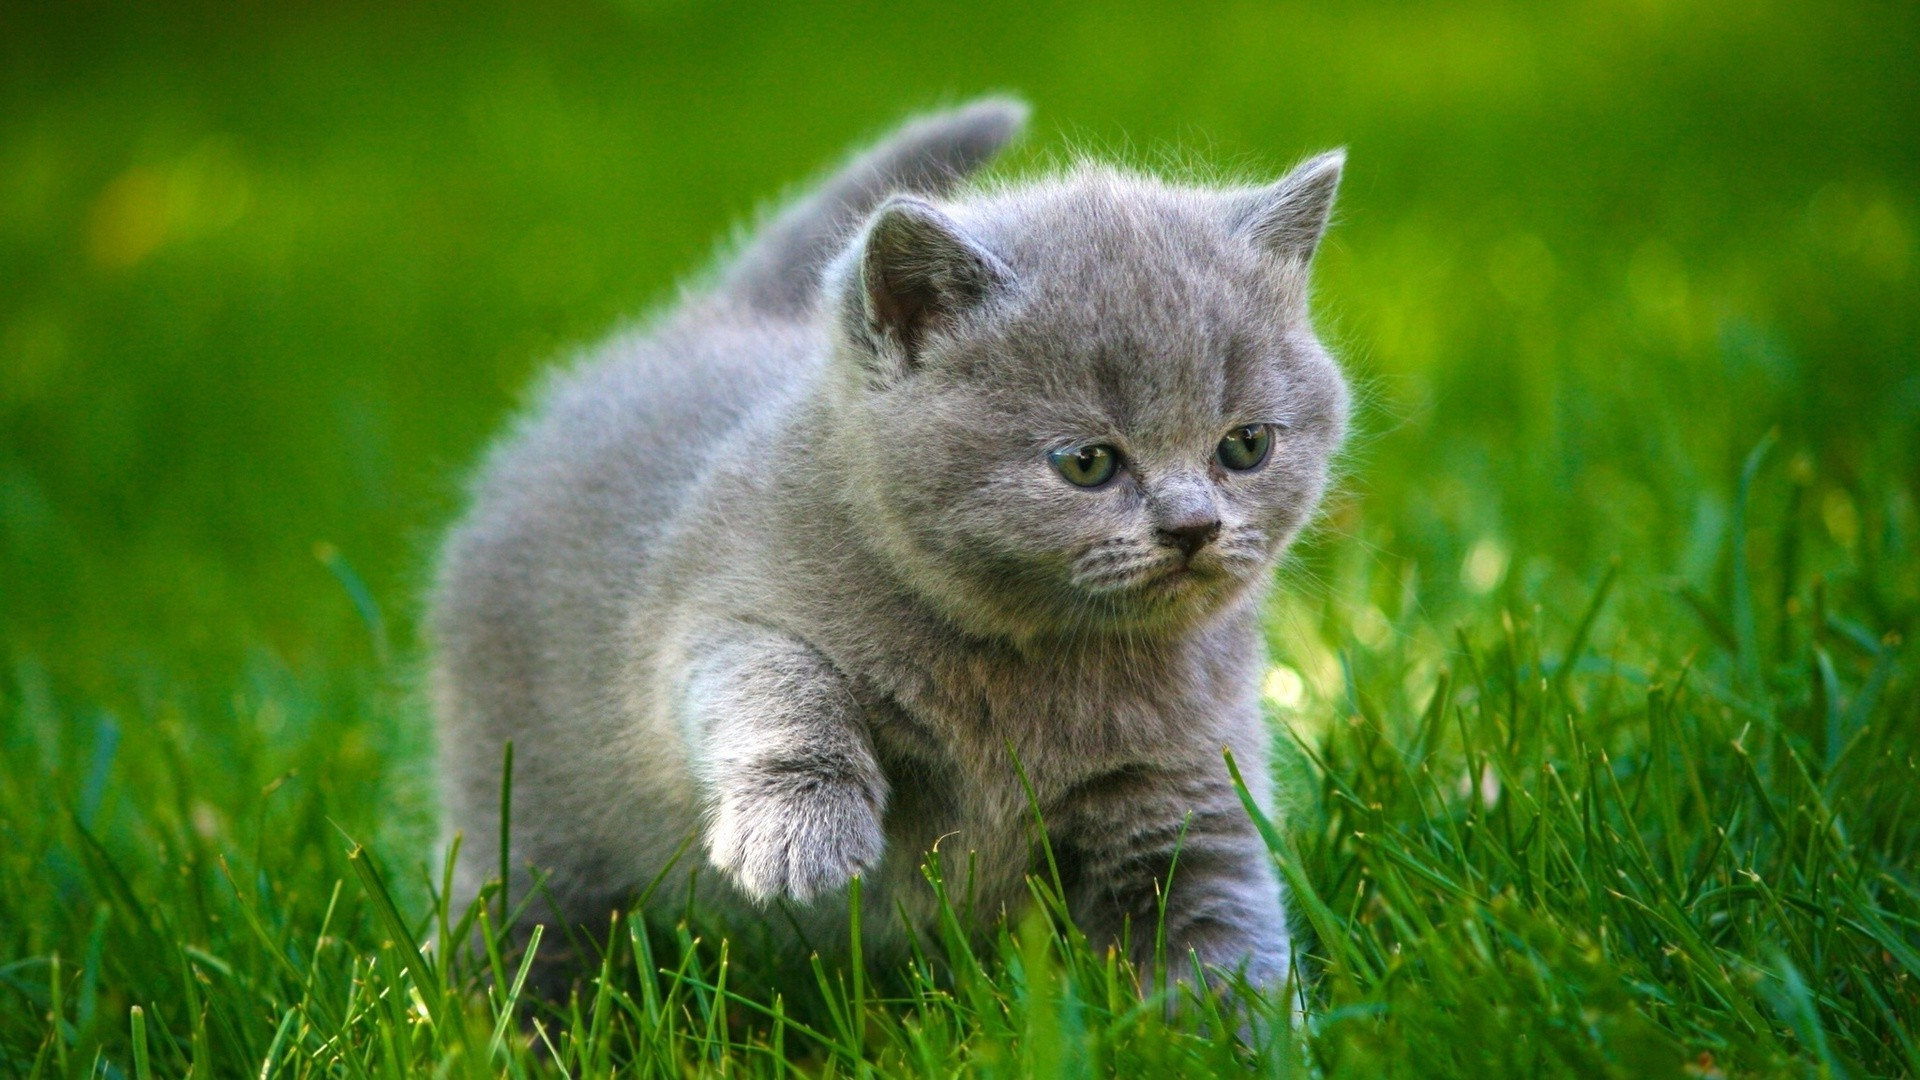 cats cute animal grass mammal little nature cat fur young baby pet adorable portrait domestic kitten